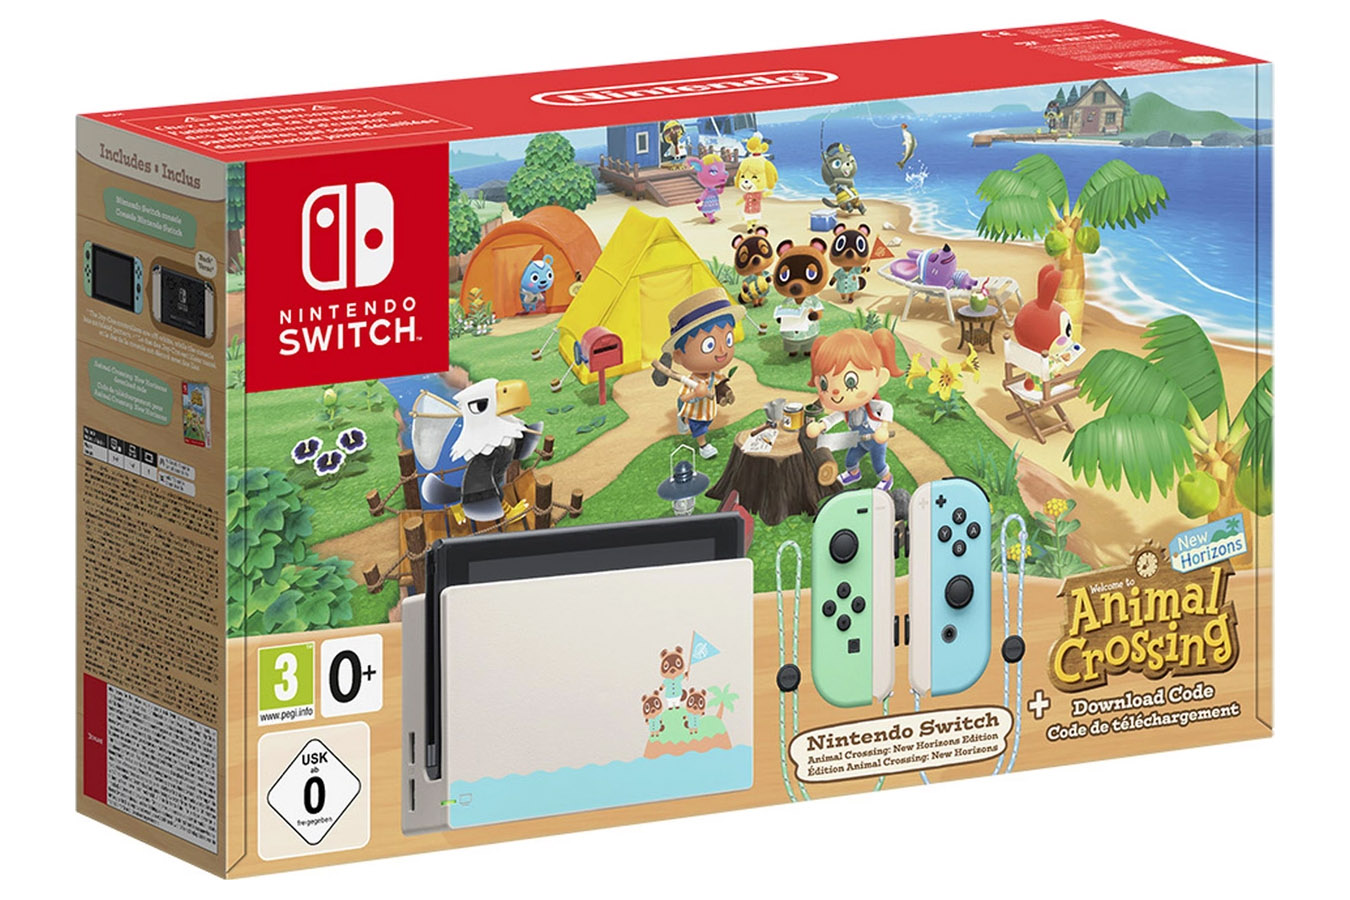 Nintendo Switch Animal Crossing: New Horizons особое издание [NSZANC]